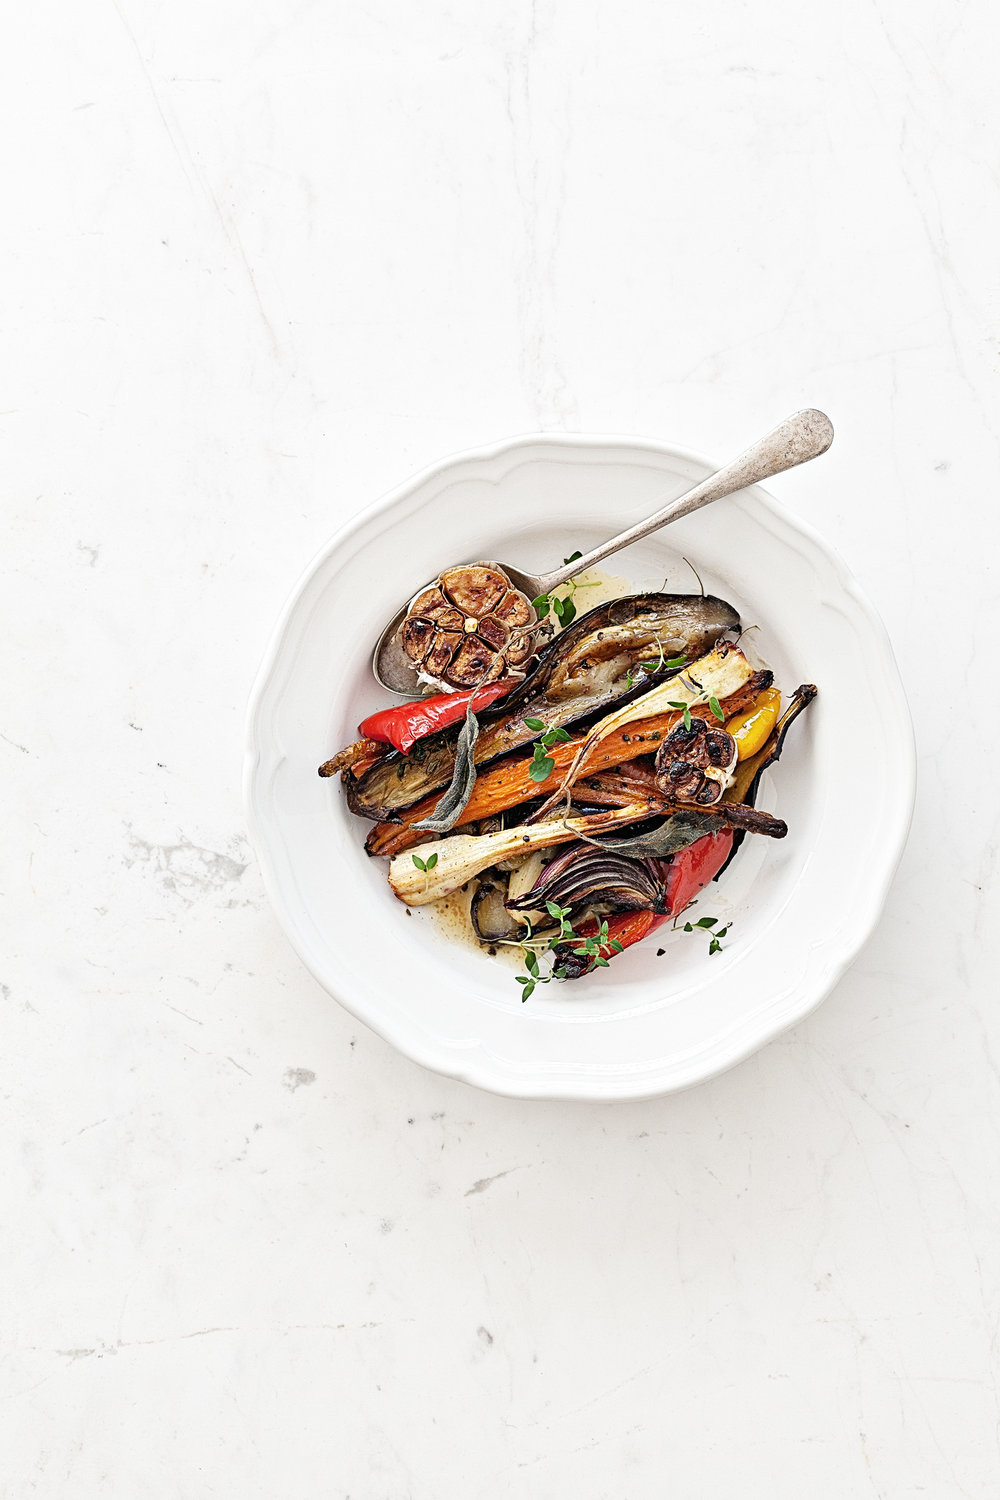 Honey Glazed Roasted Vegetables | www.maegabriel.com